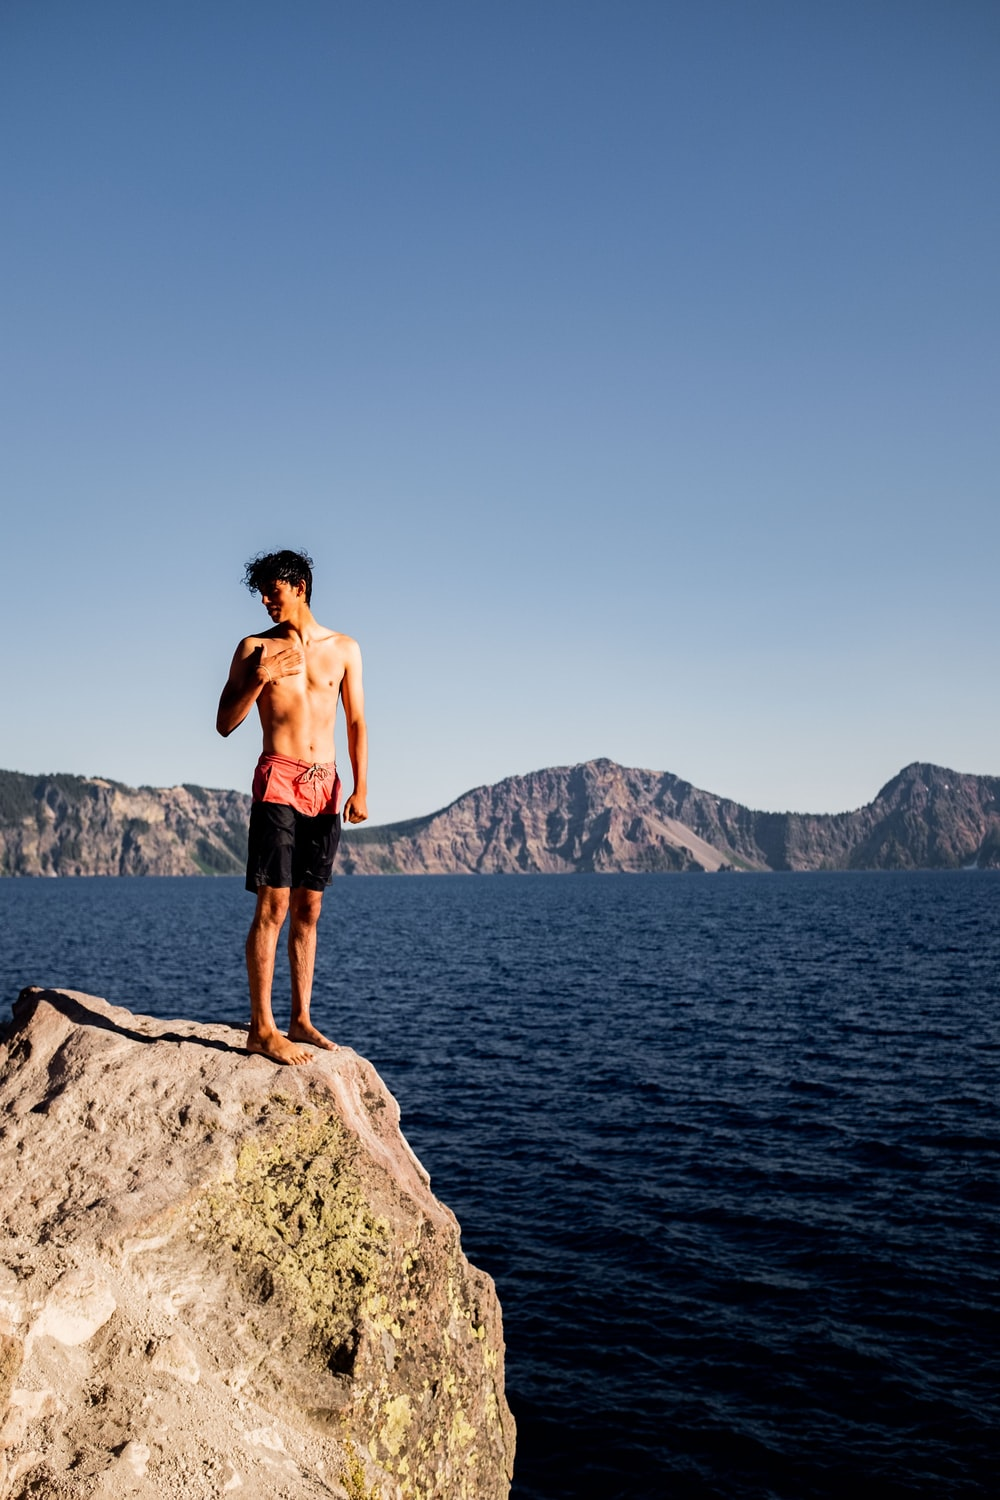 man in black shorts standing on rock formation near body of water during daytime